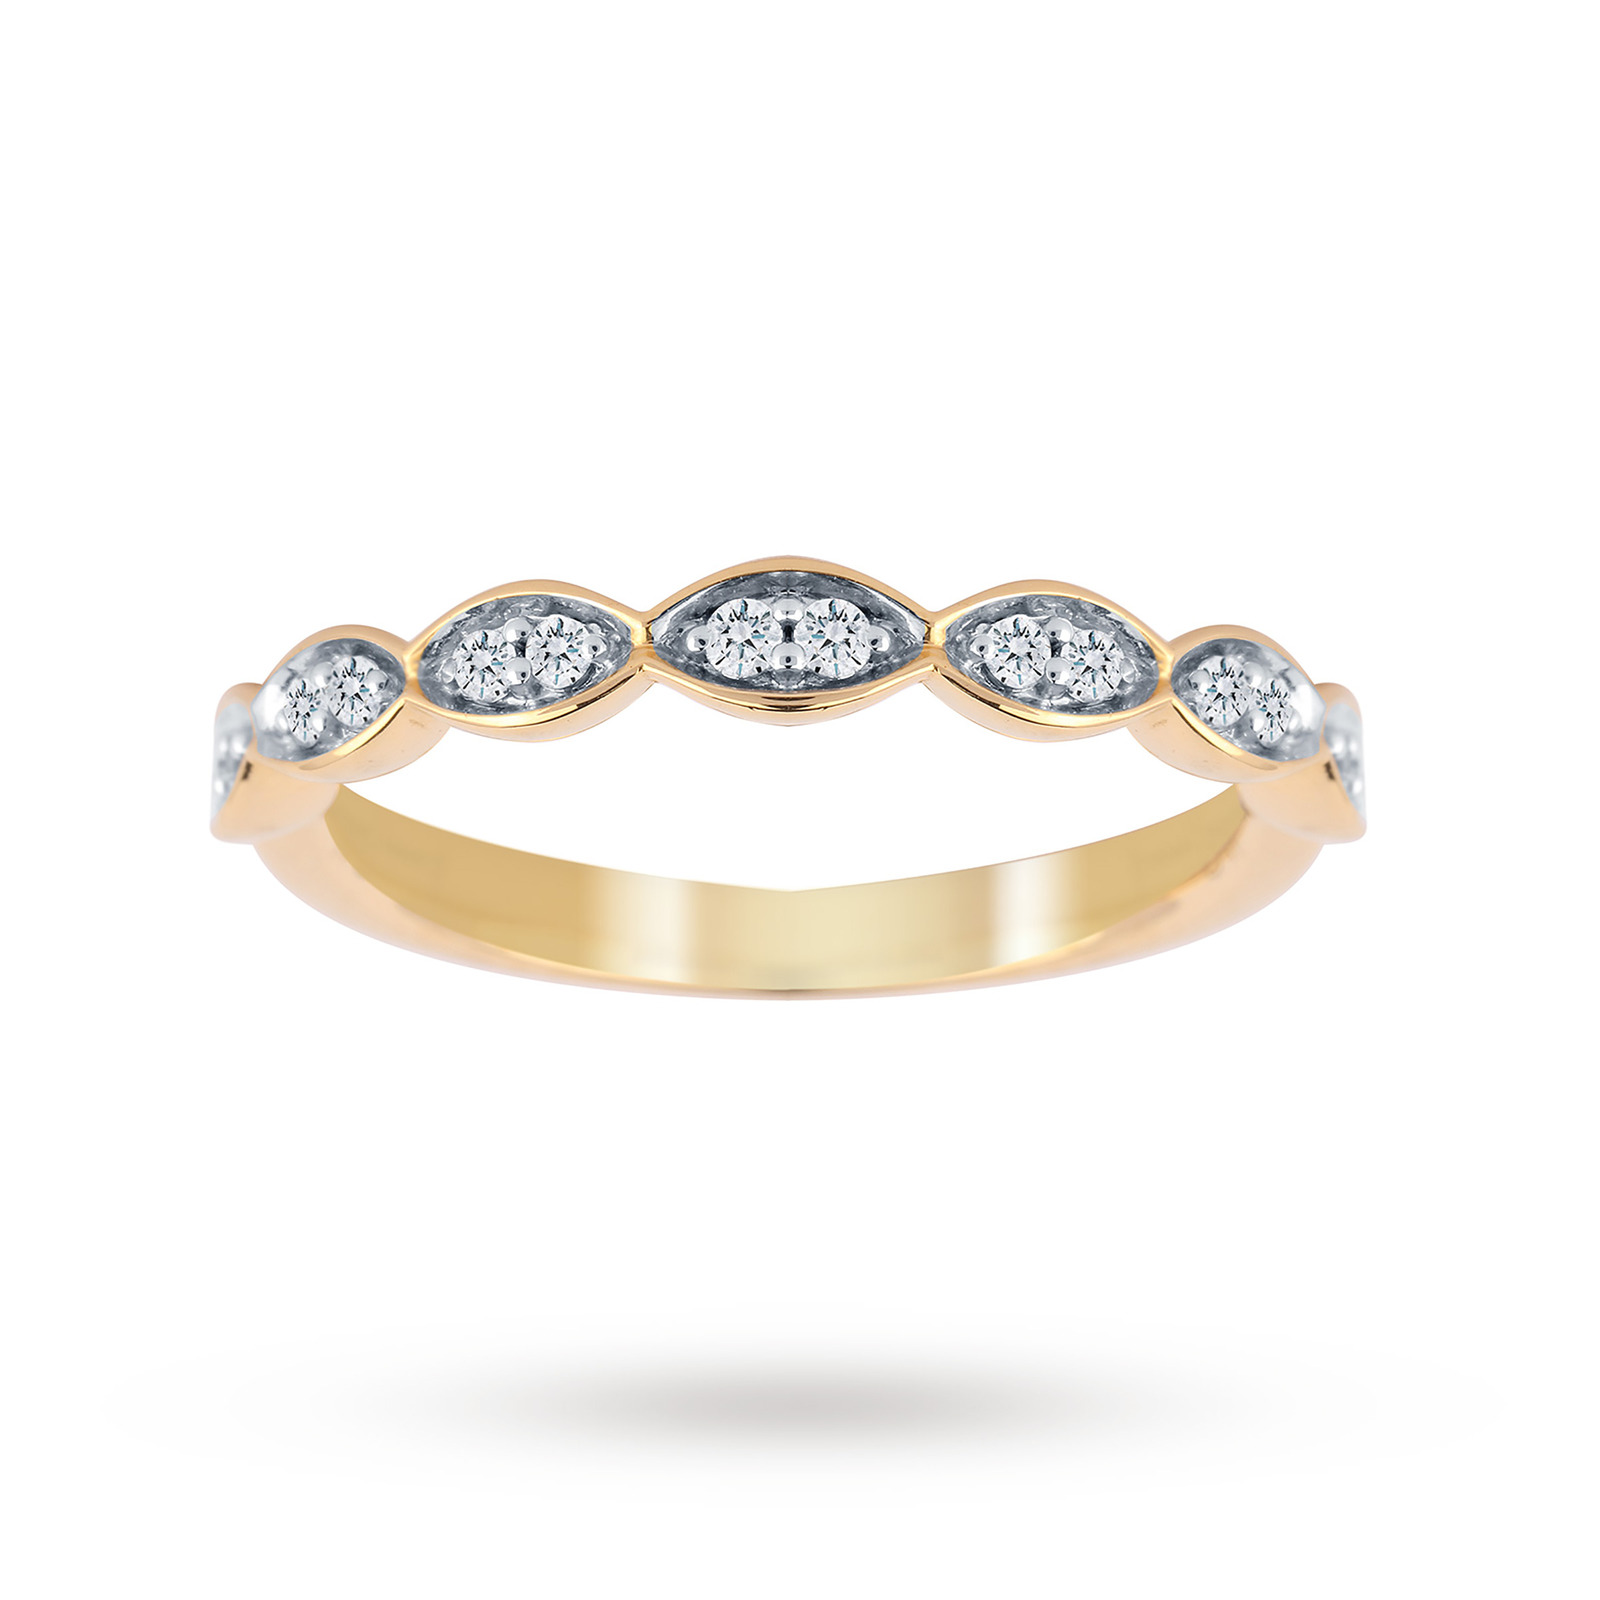 Jenny Packham 18ct Yellow Gold 0.14cttw Band Ring